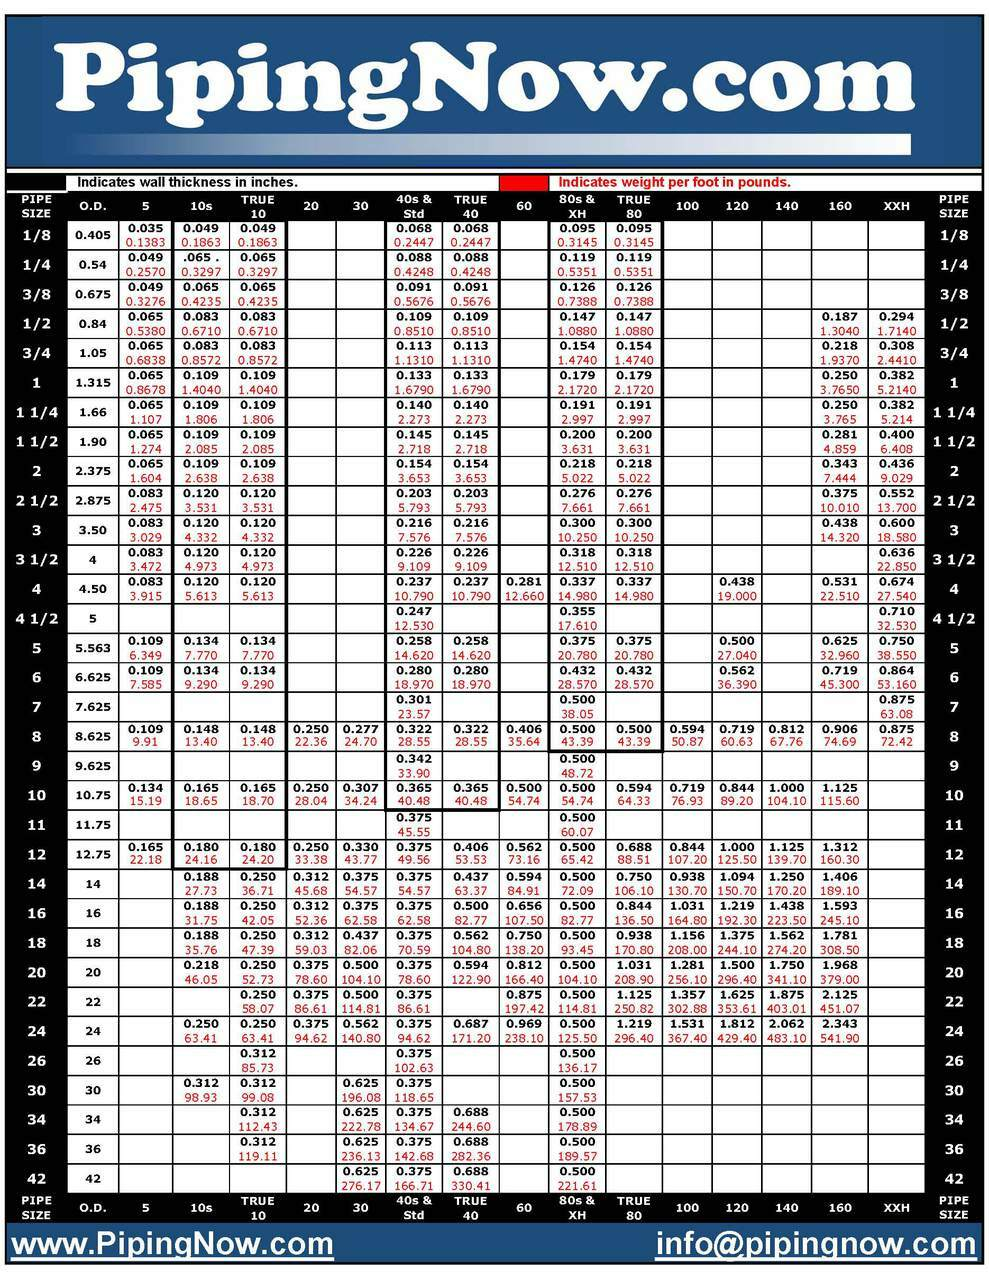 38 welded pipe schedule 40s stainless steel 304304l astm a312 stainless steel pipe chart a312stainless steel pipe weightsstainless steel pipe dimensions geenschuldenfo Gallery